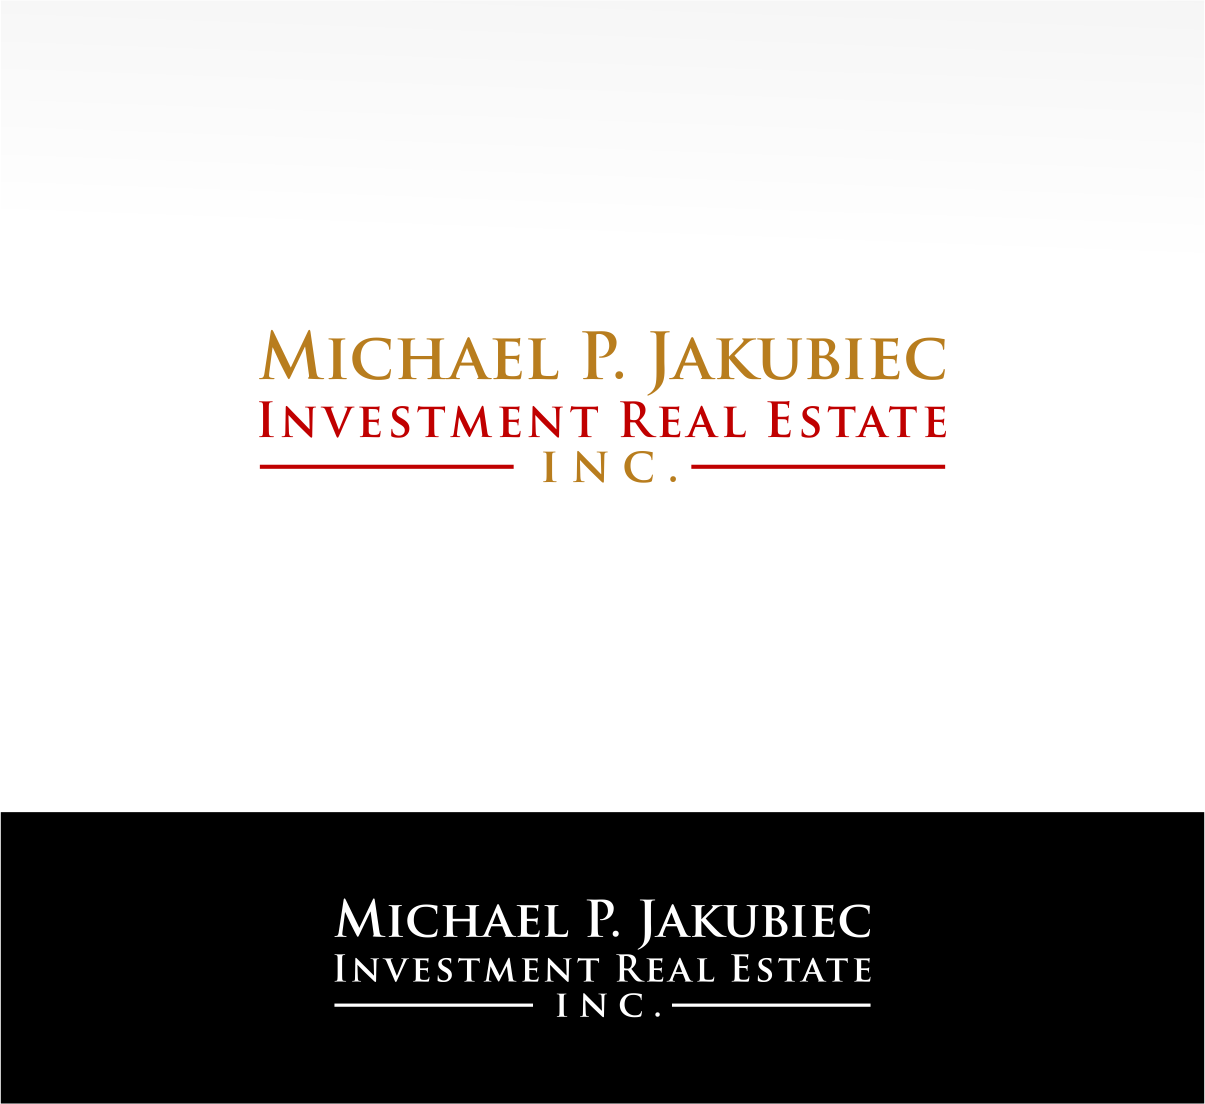 Logo Design by haidu - Entry No. 19 in the Logo Design Contest New Logo Design for Michael P. Jakubiec Investment Real Estate, Inc..